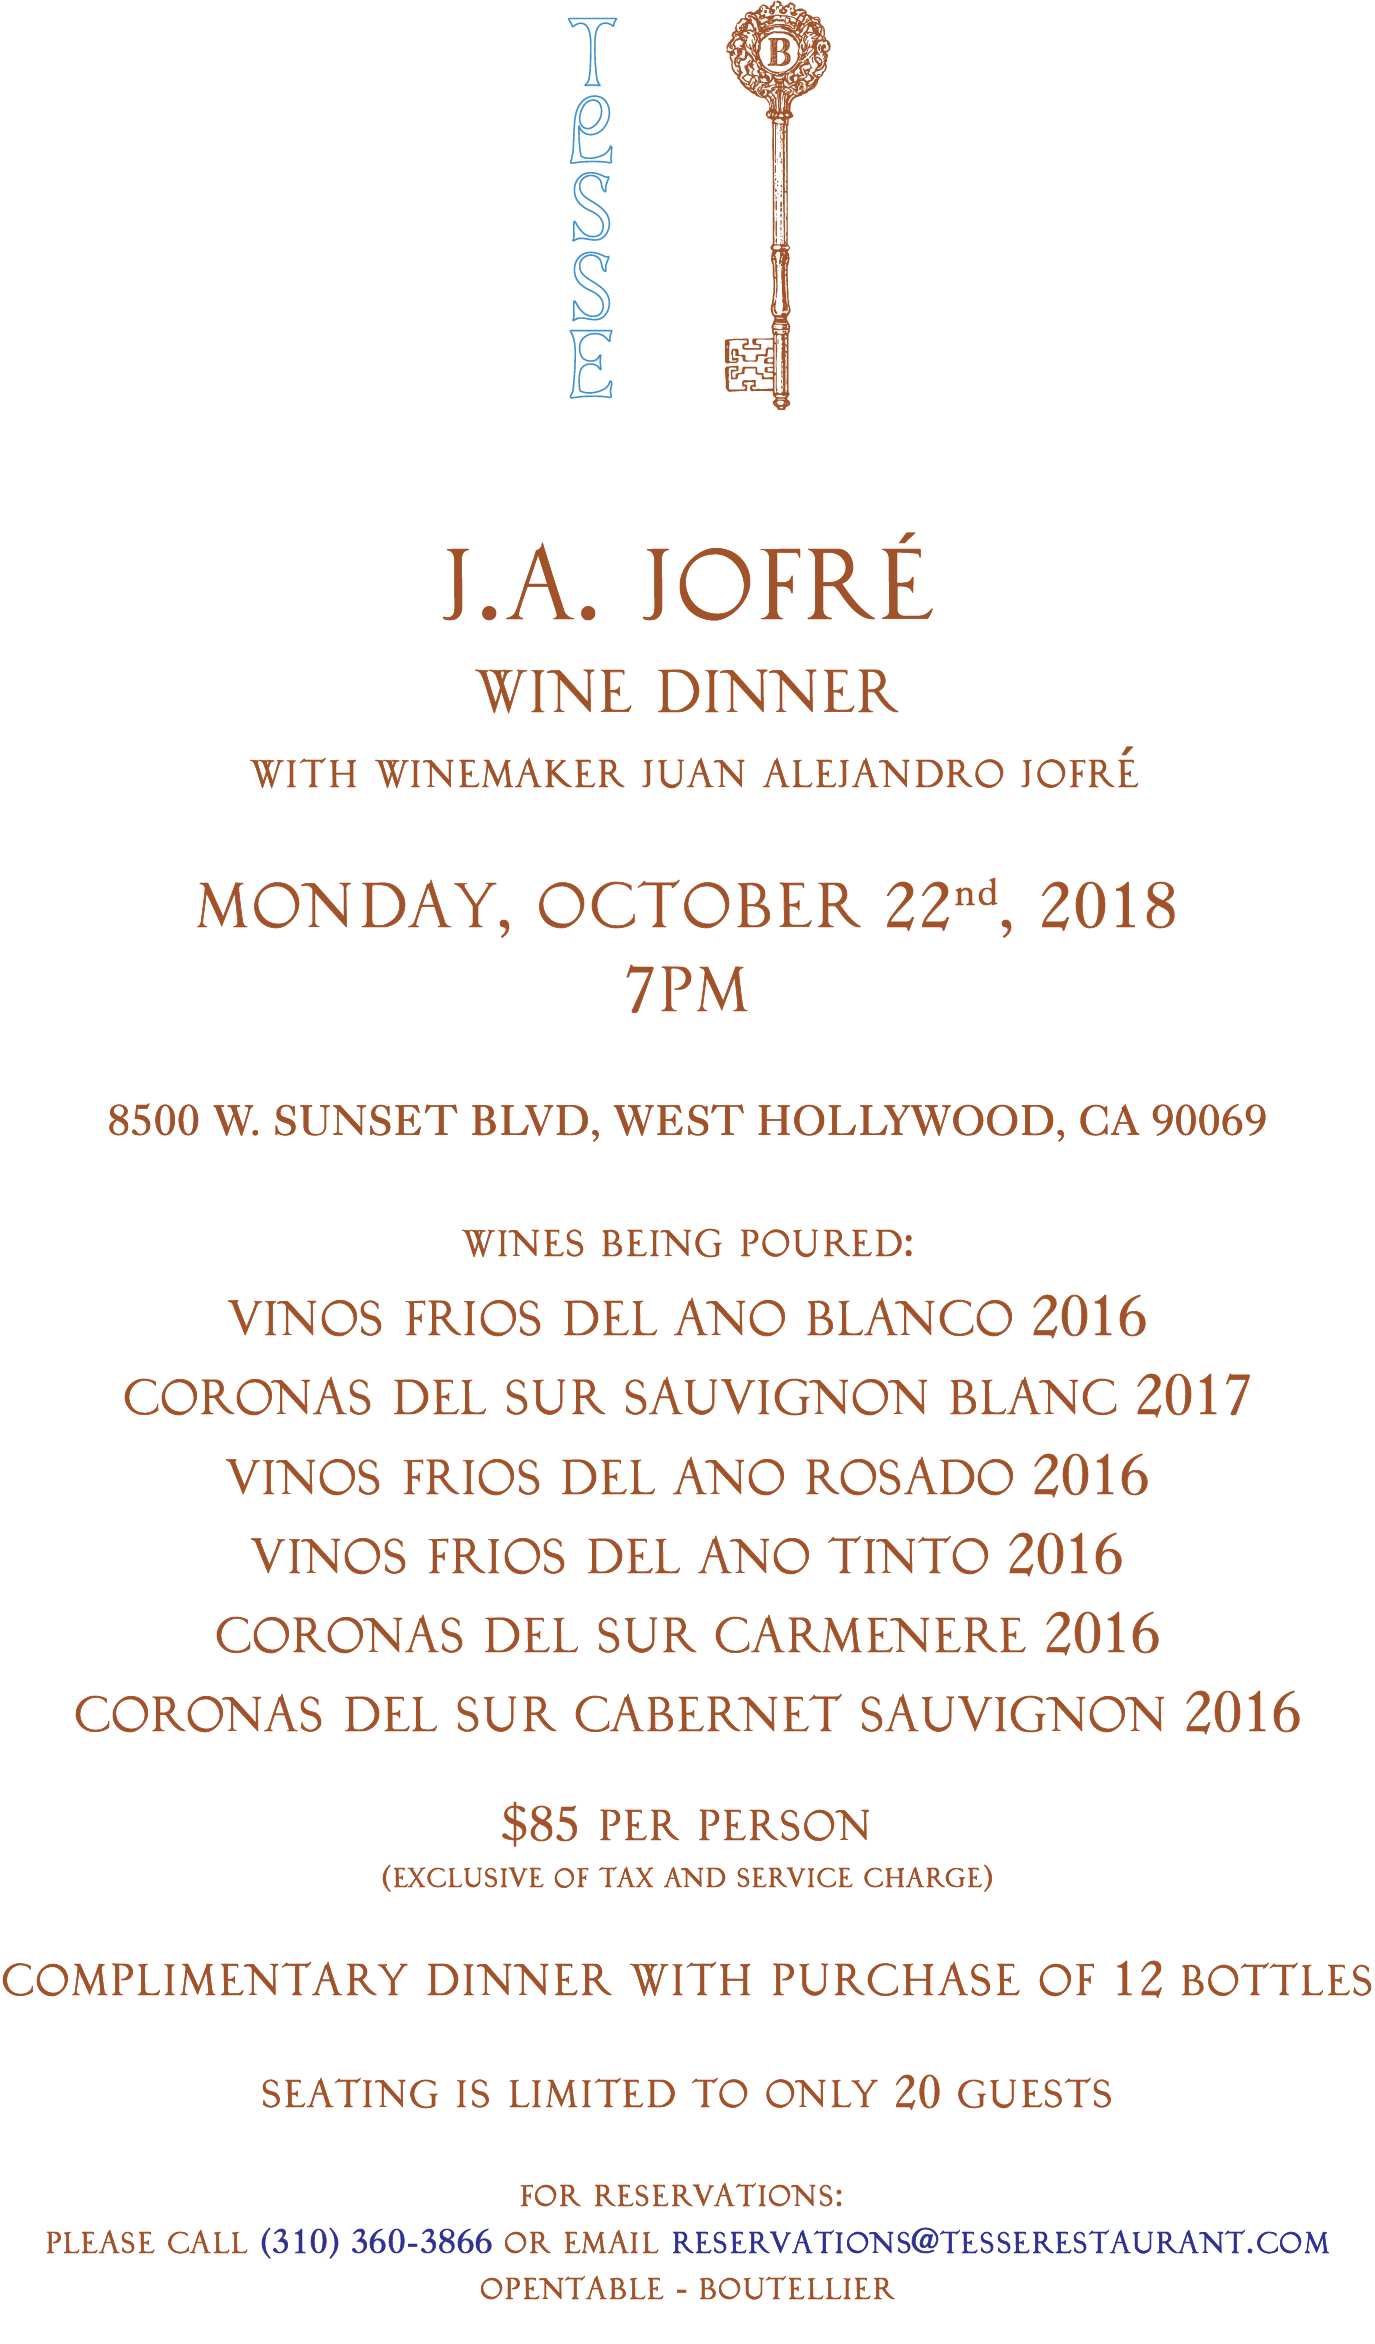 J.A. Jofre Wine Dinner Invite.png